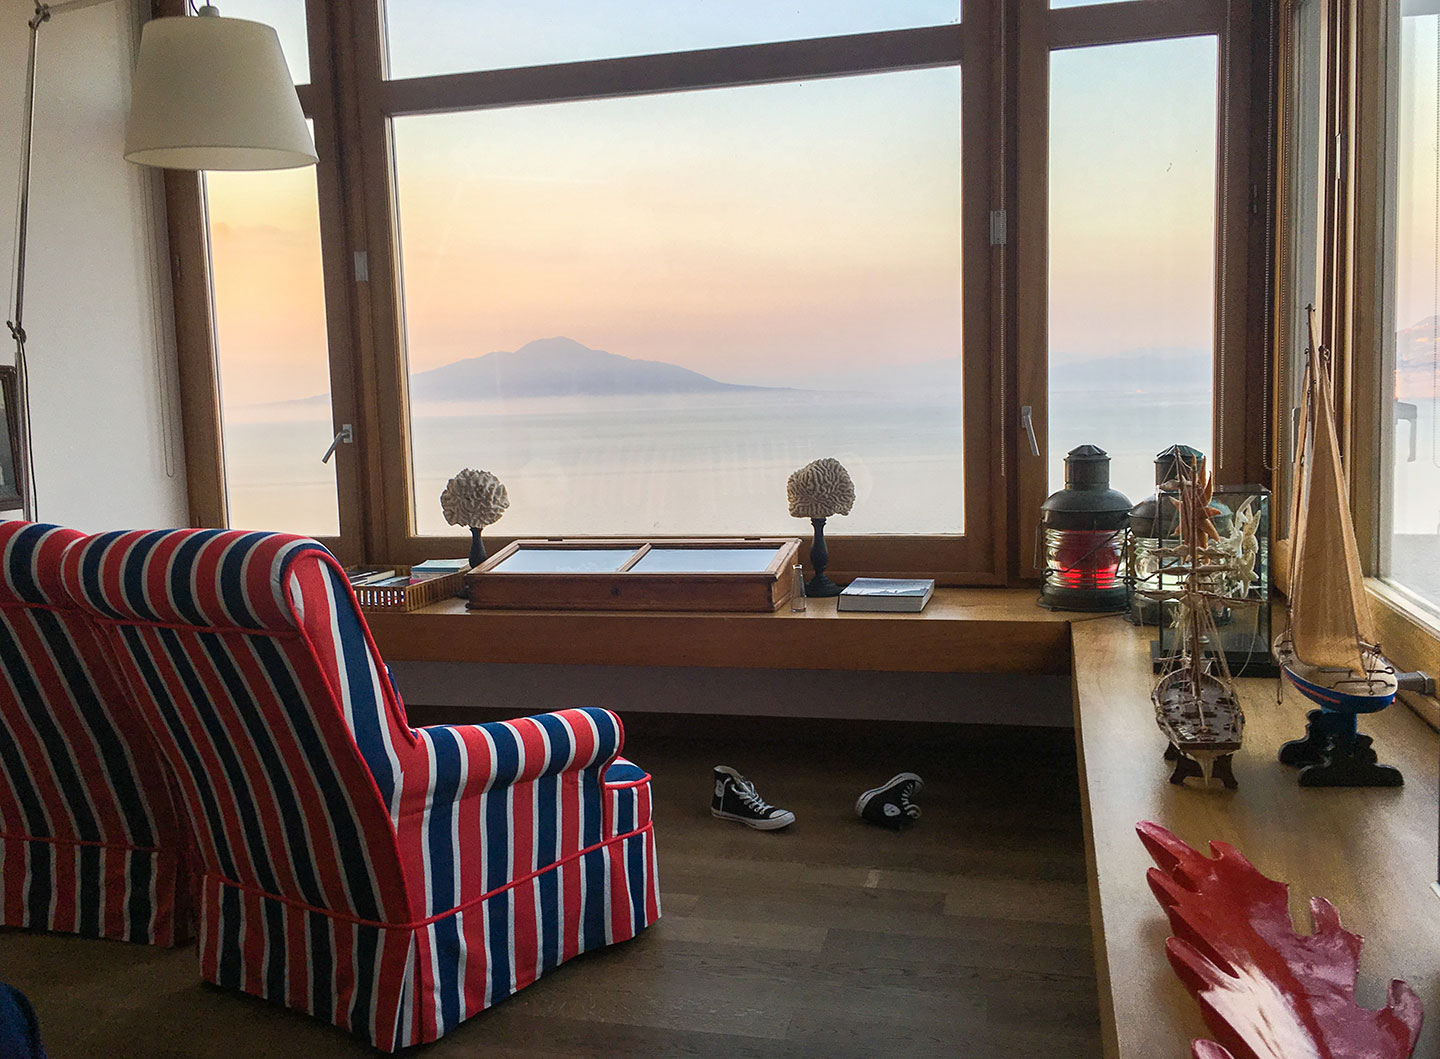 The junior suite overlooking the bay of Naples at the nautically themed Maison La Minervetta in Sorrento Italy